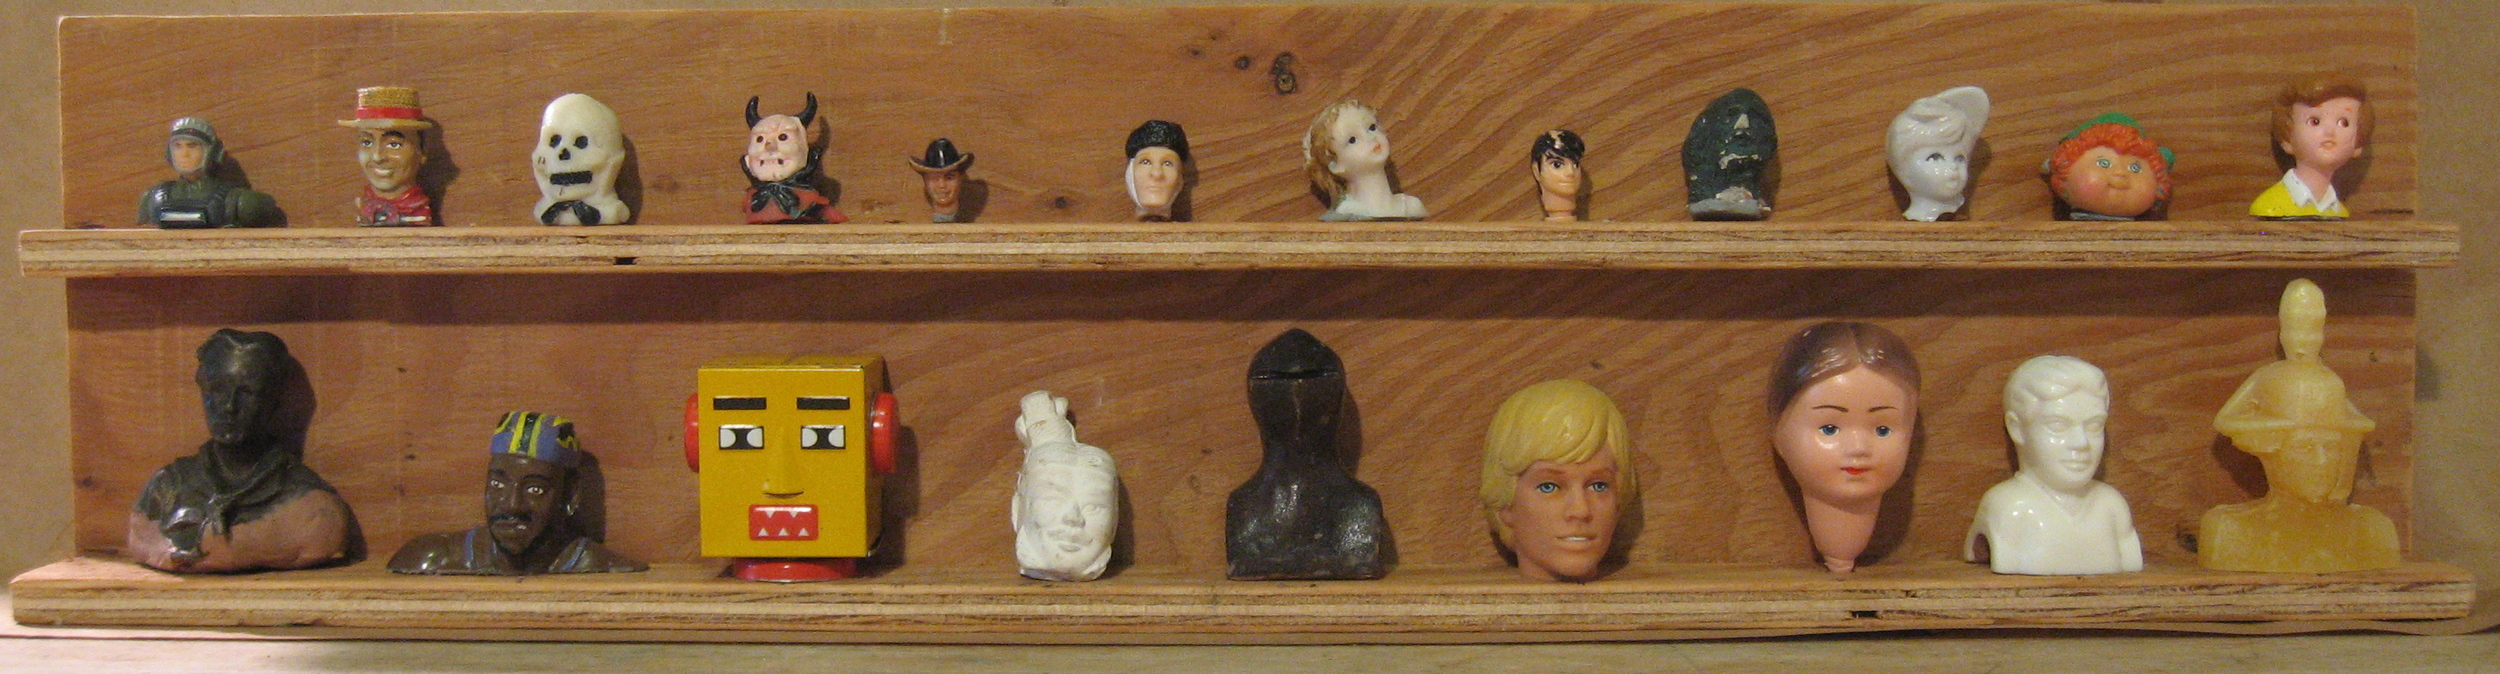 Display of Heads